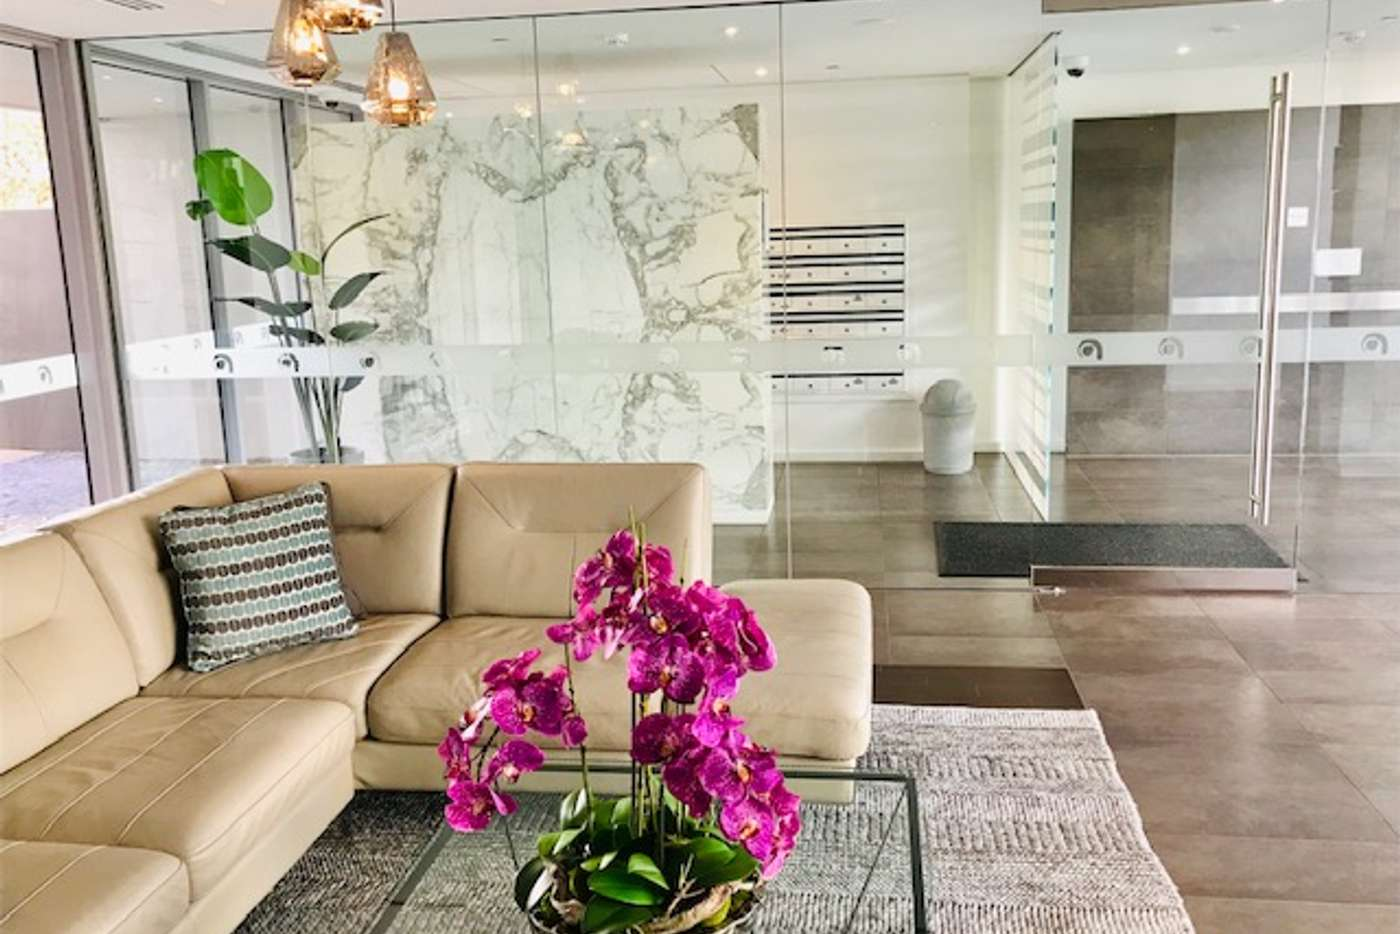 Main view of Homely apartment listing, 1107/30 The Circus, Burswood WA 6100